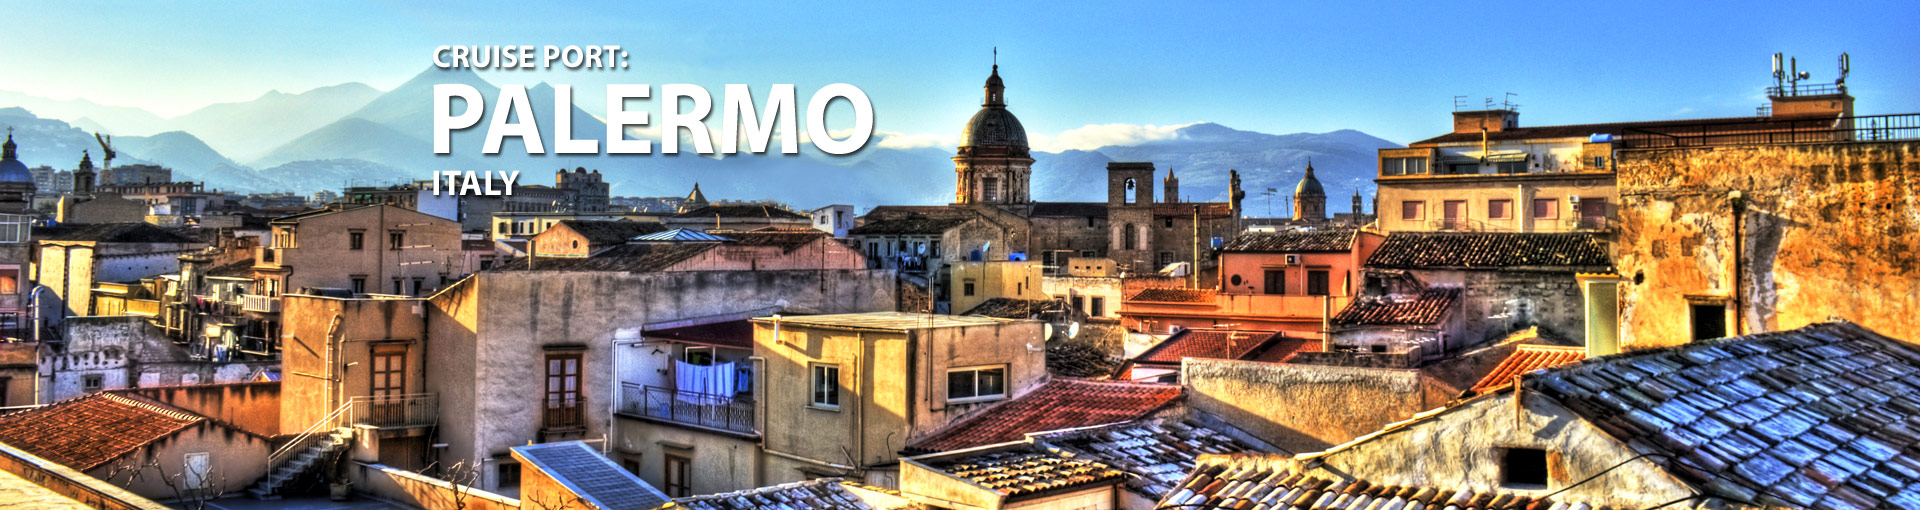 Cruises from Palermo, Sicily, Italy